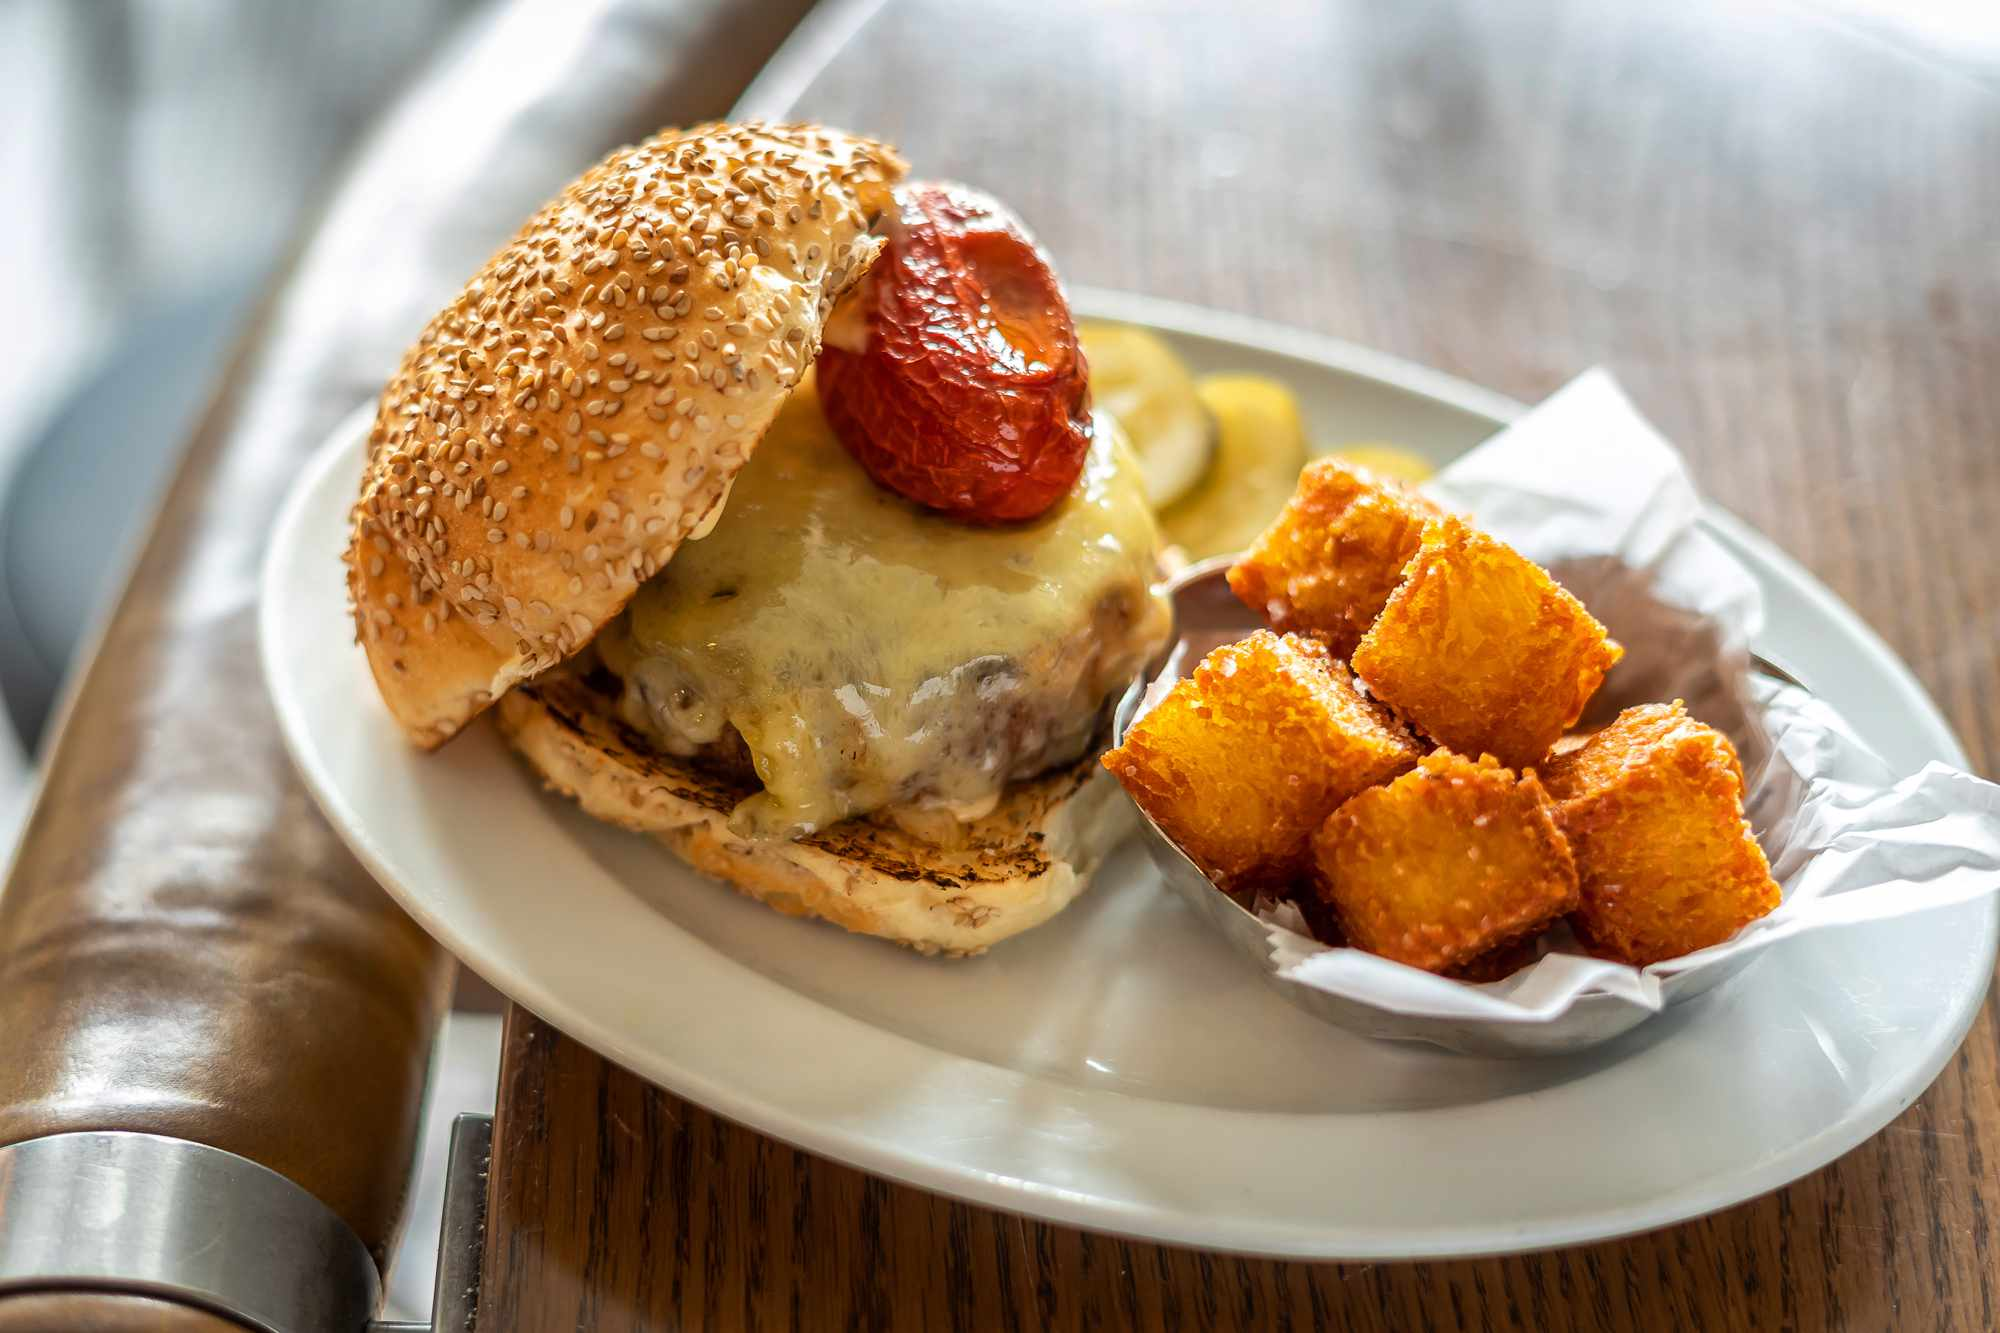 Cheese burger from the loyal with a whole roasted cherry tomato